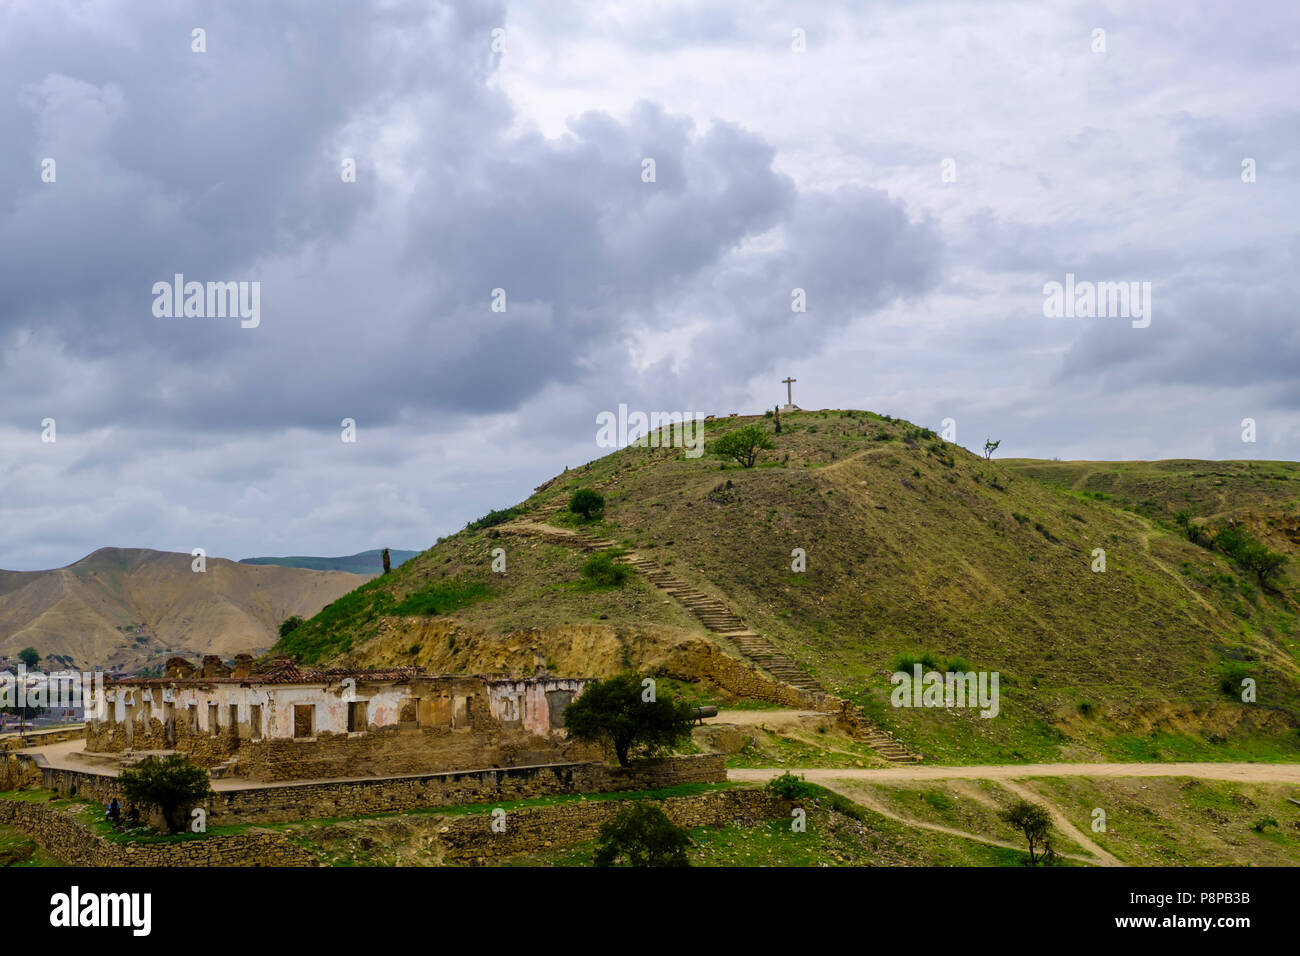 Remains of Portugese fort and cross on hillside outside city of Lobito Angola - Stock Image